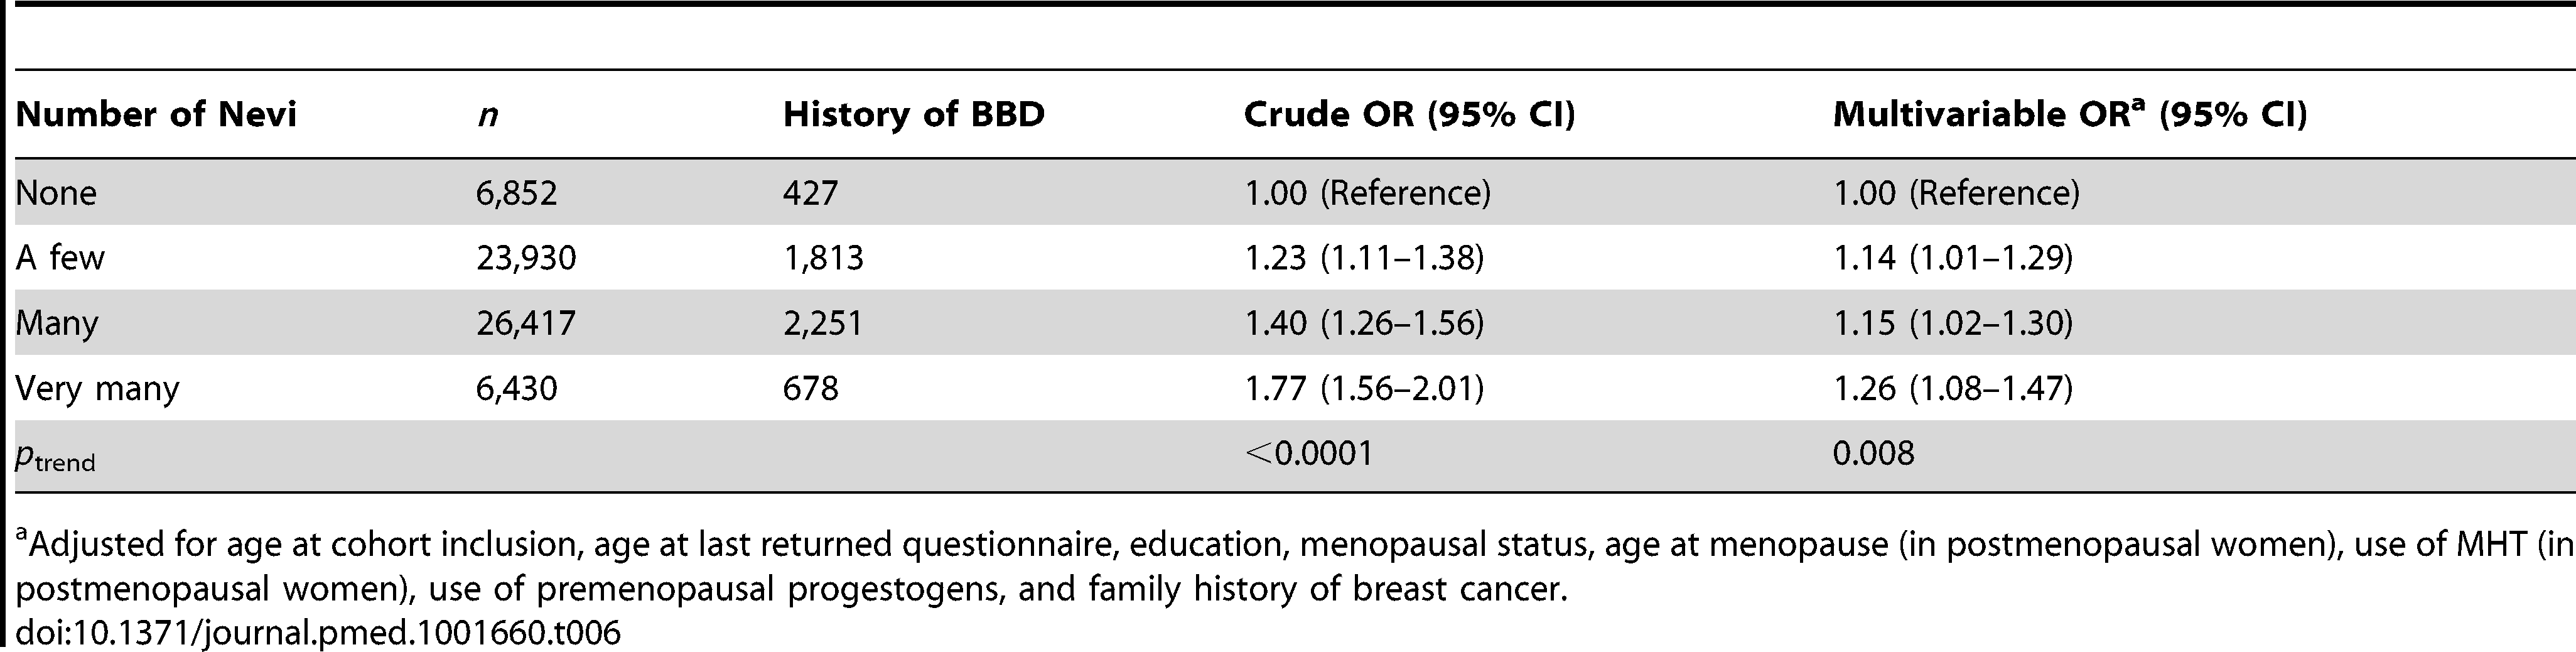 Odds ratios and 95% confidence intervals for number of nevi in relation to history of benign breast disease, E3N cohort.